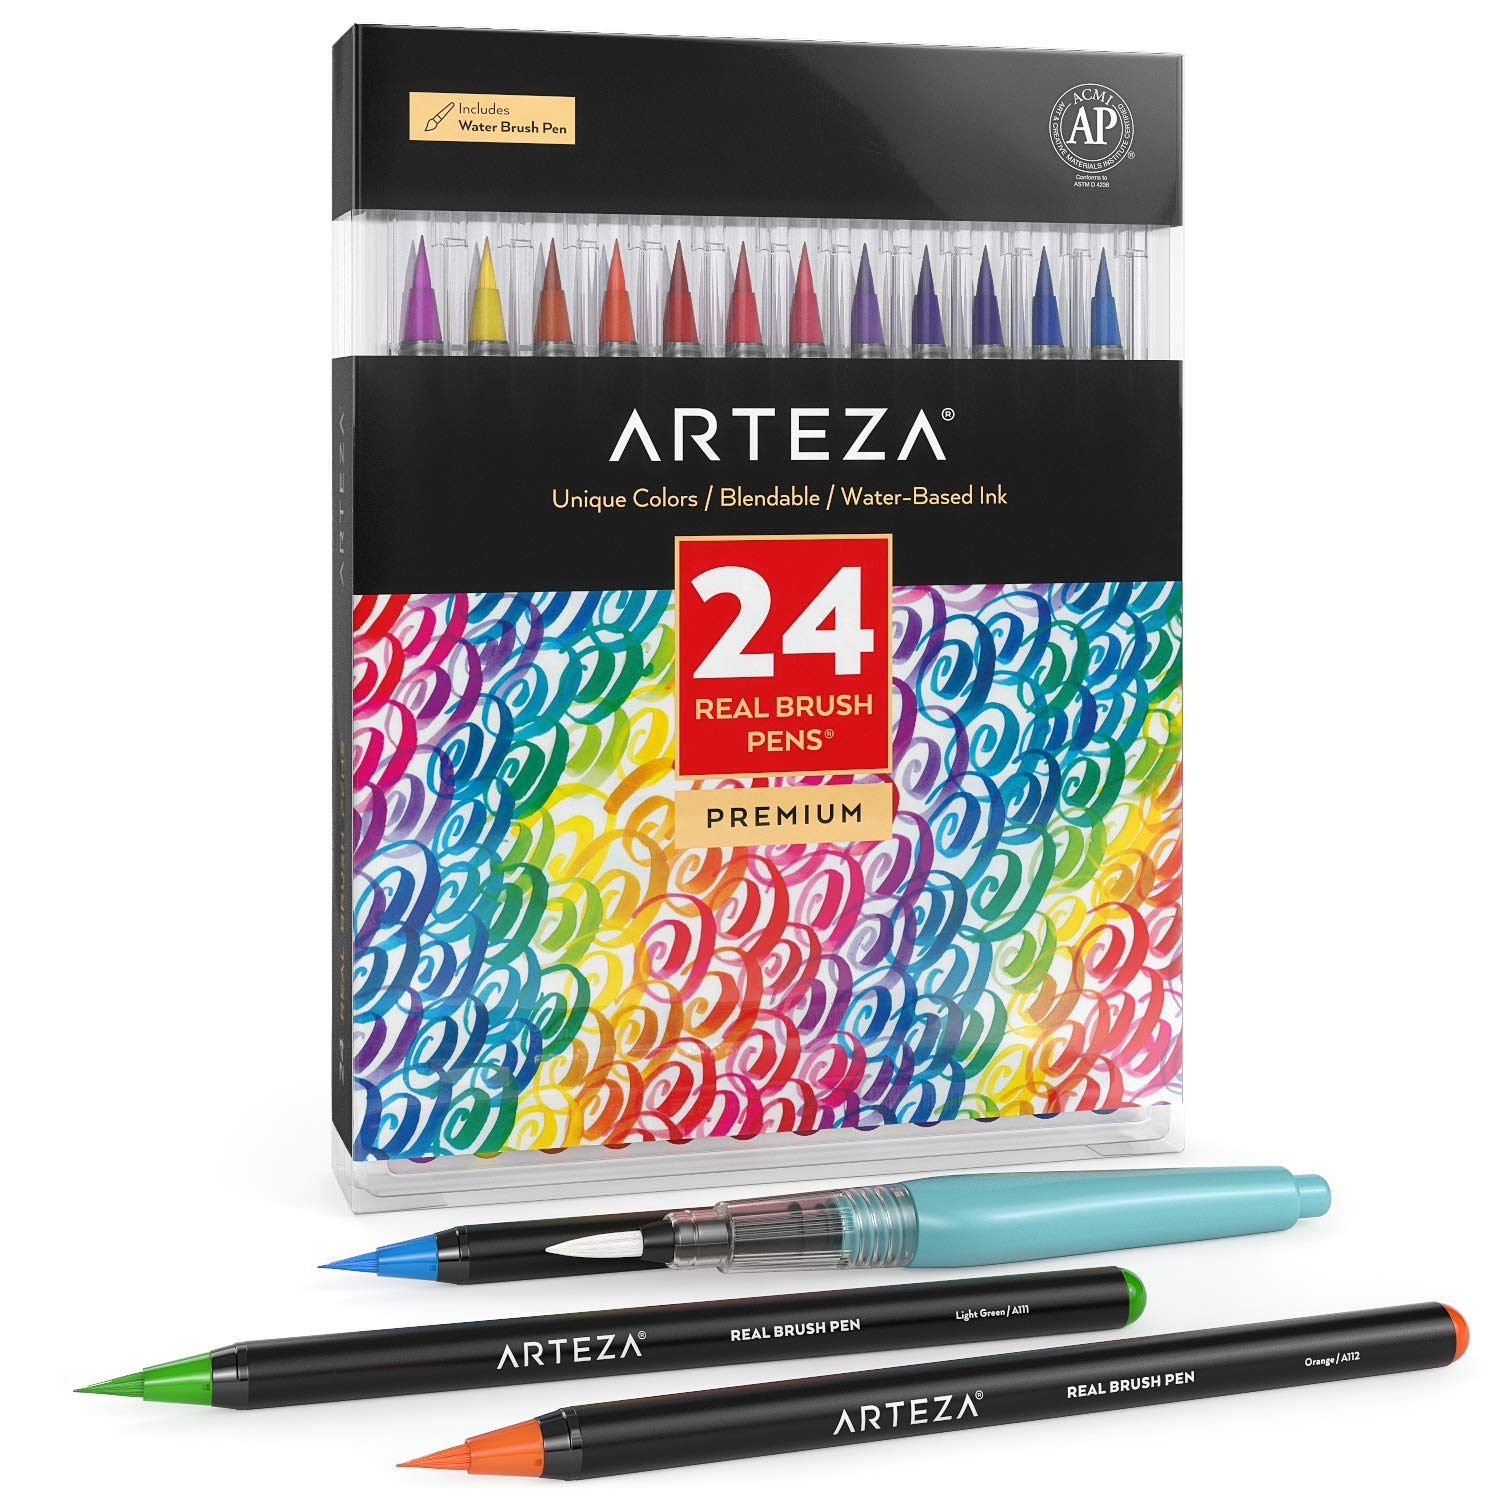 ARTEZA Real Brush Pens, 24